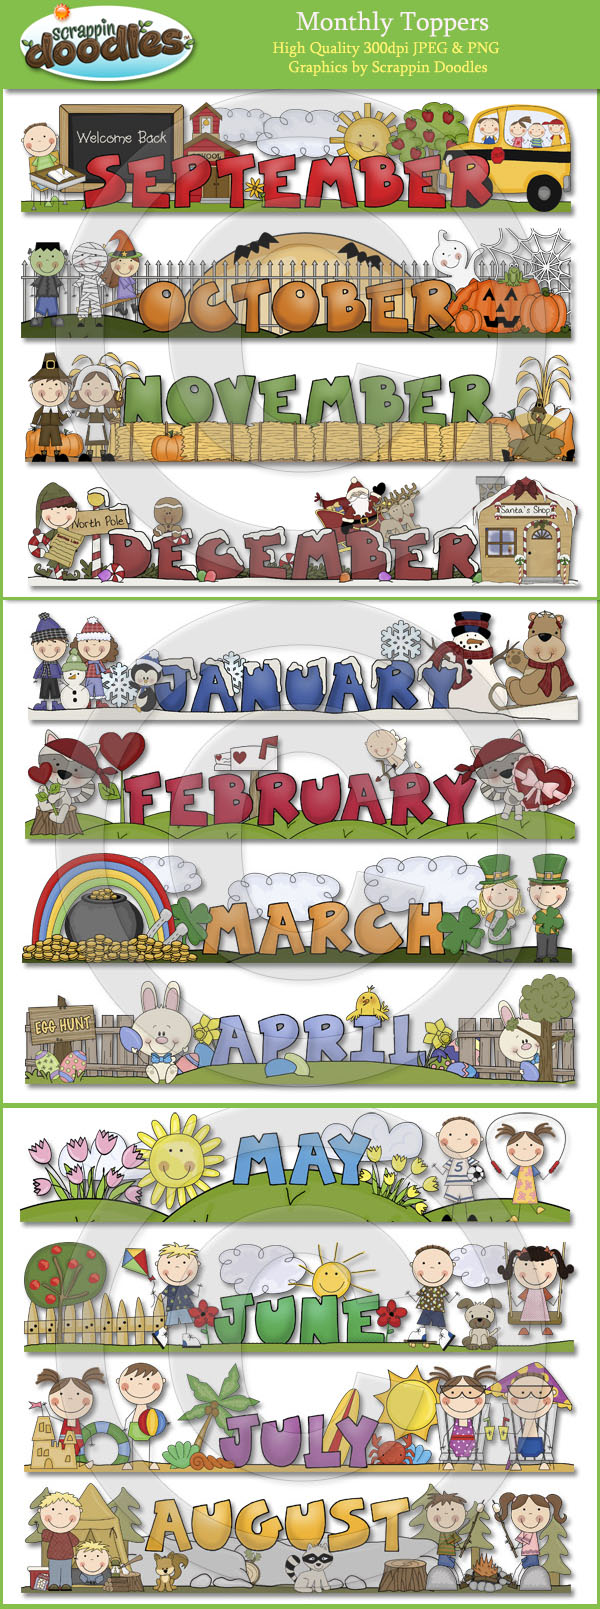 Calendar clipart calendar month Clipart calendar month August Monthly